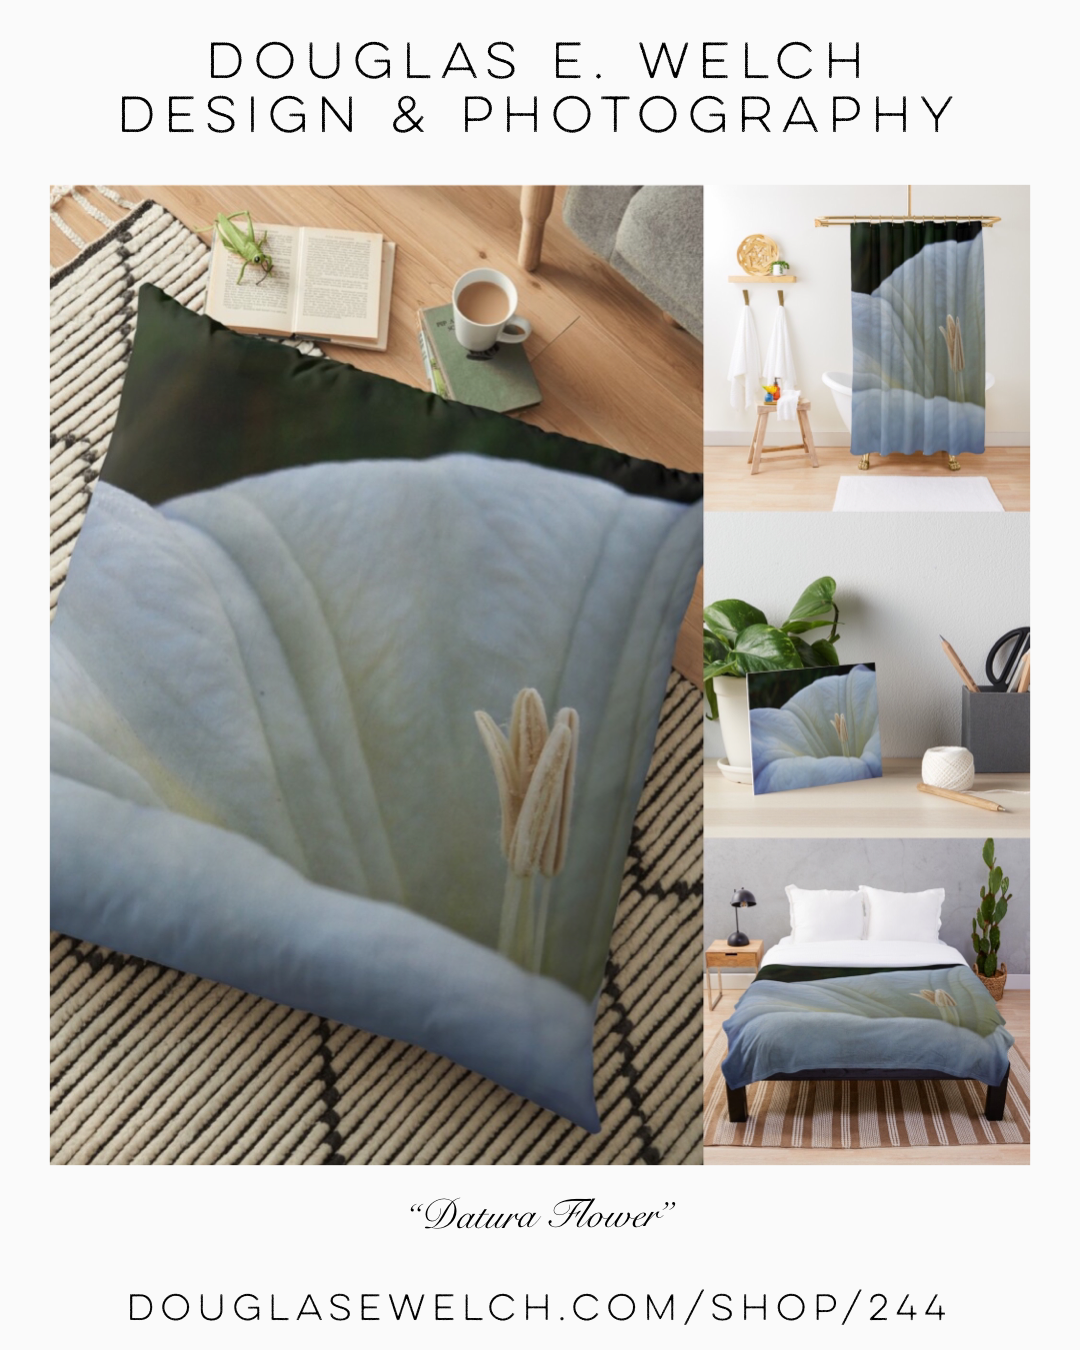 Get These Datura Flowers on Shower Curtains, Pillows, and More From Douglas E. Welch Design and Photography [For Sale]